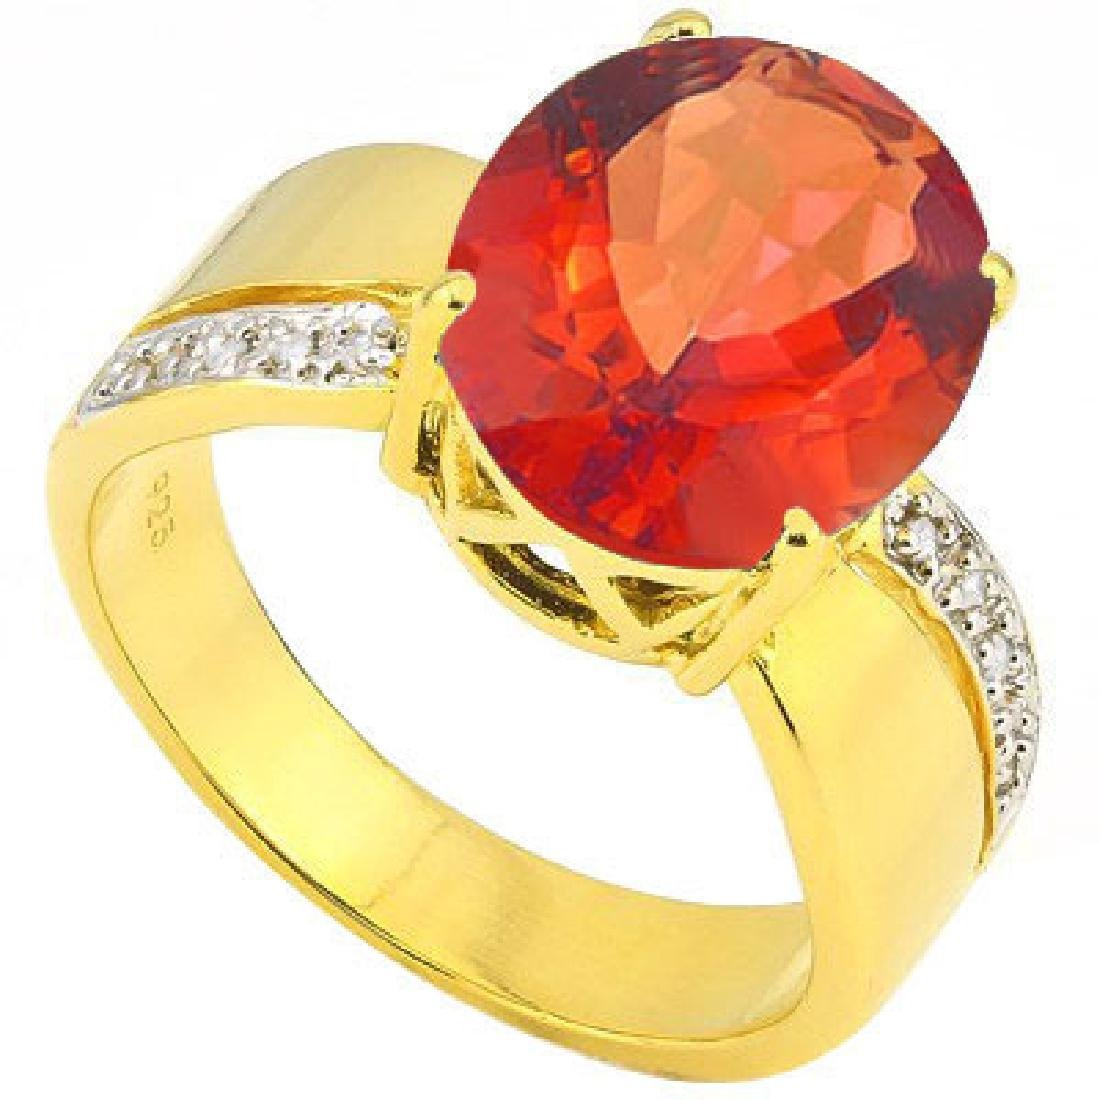 Stunning Hessonite & Diamond Ring